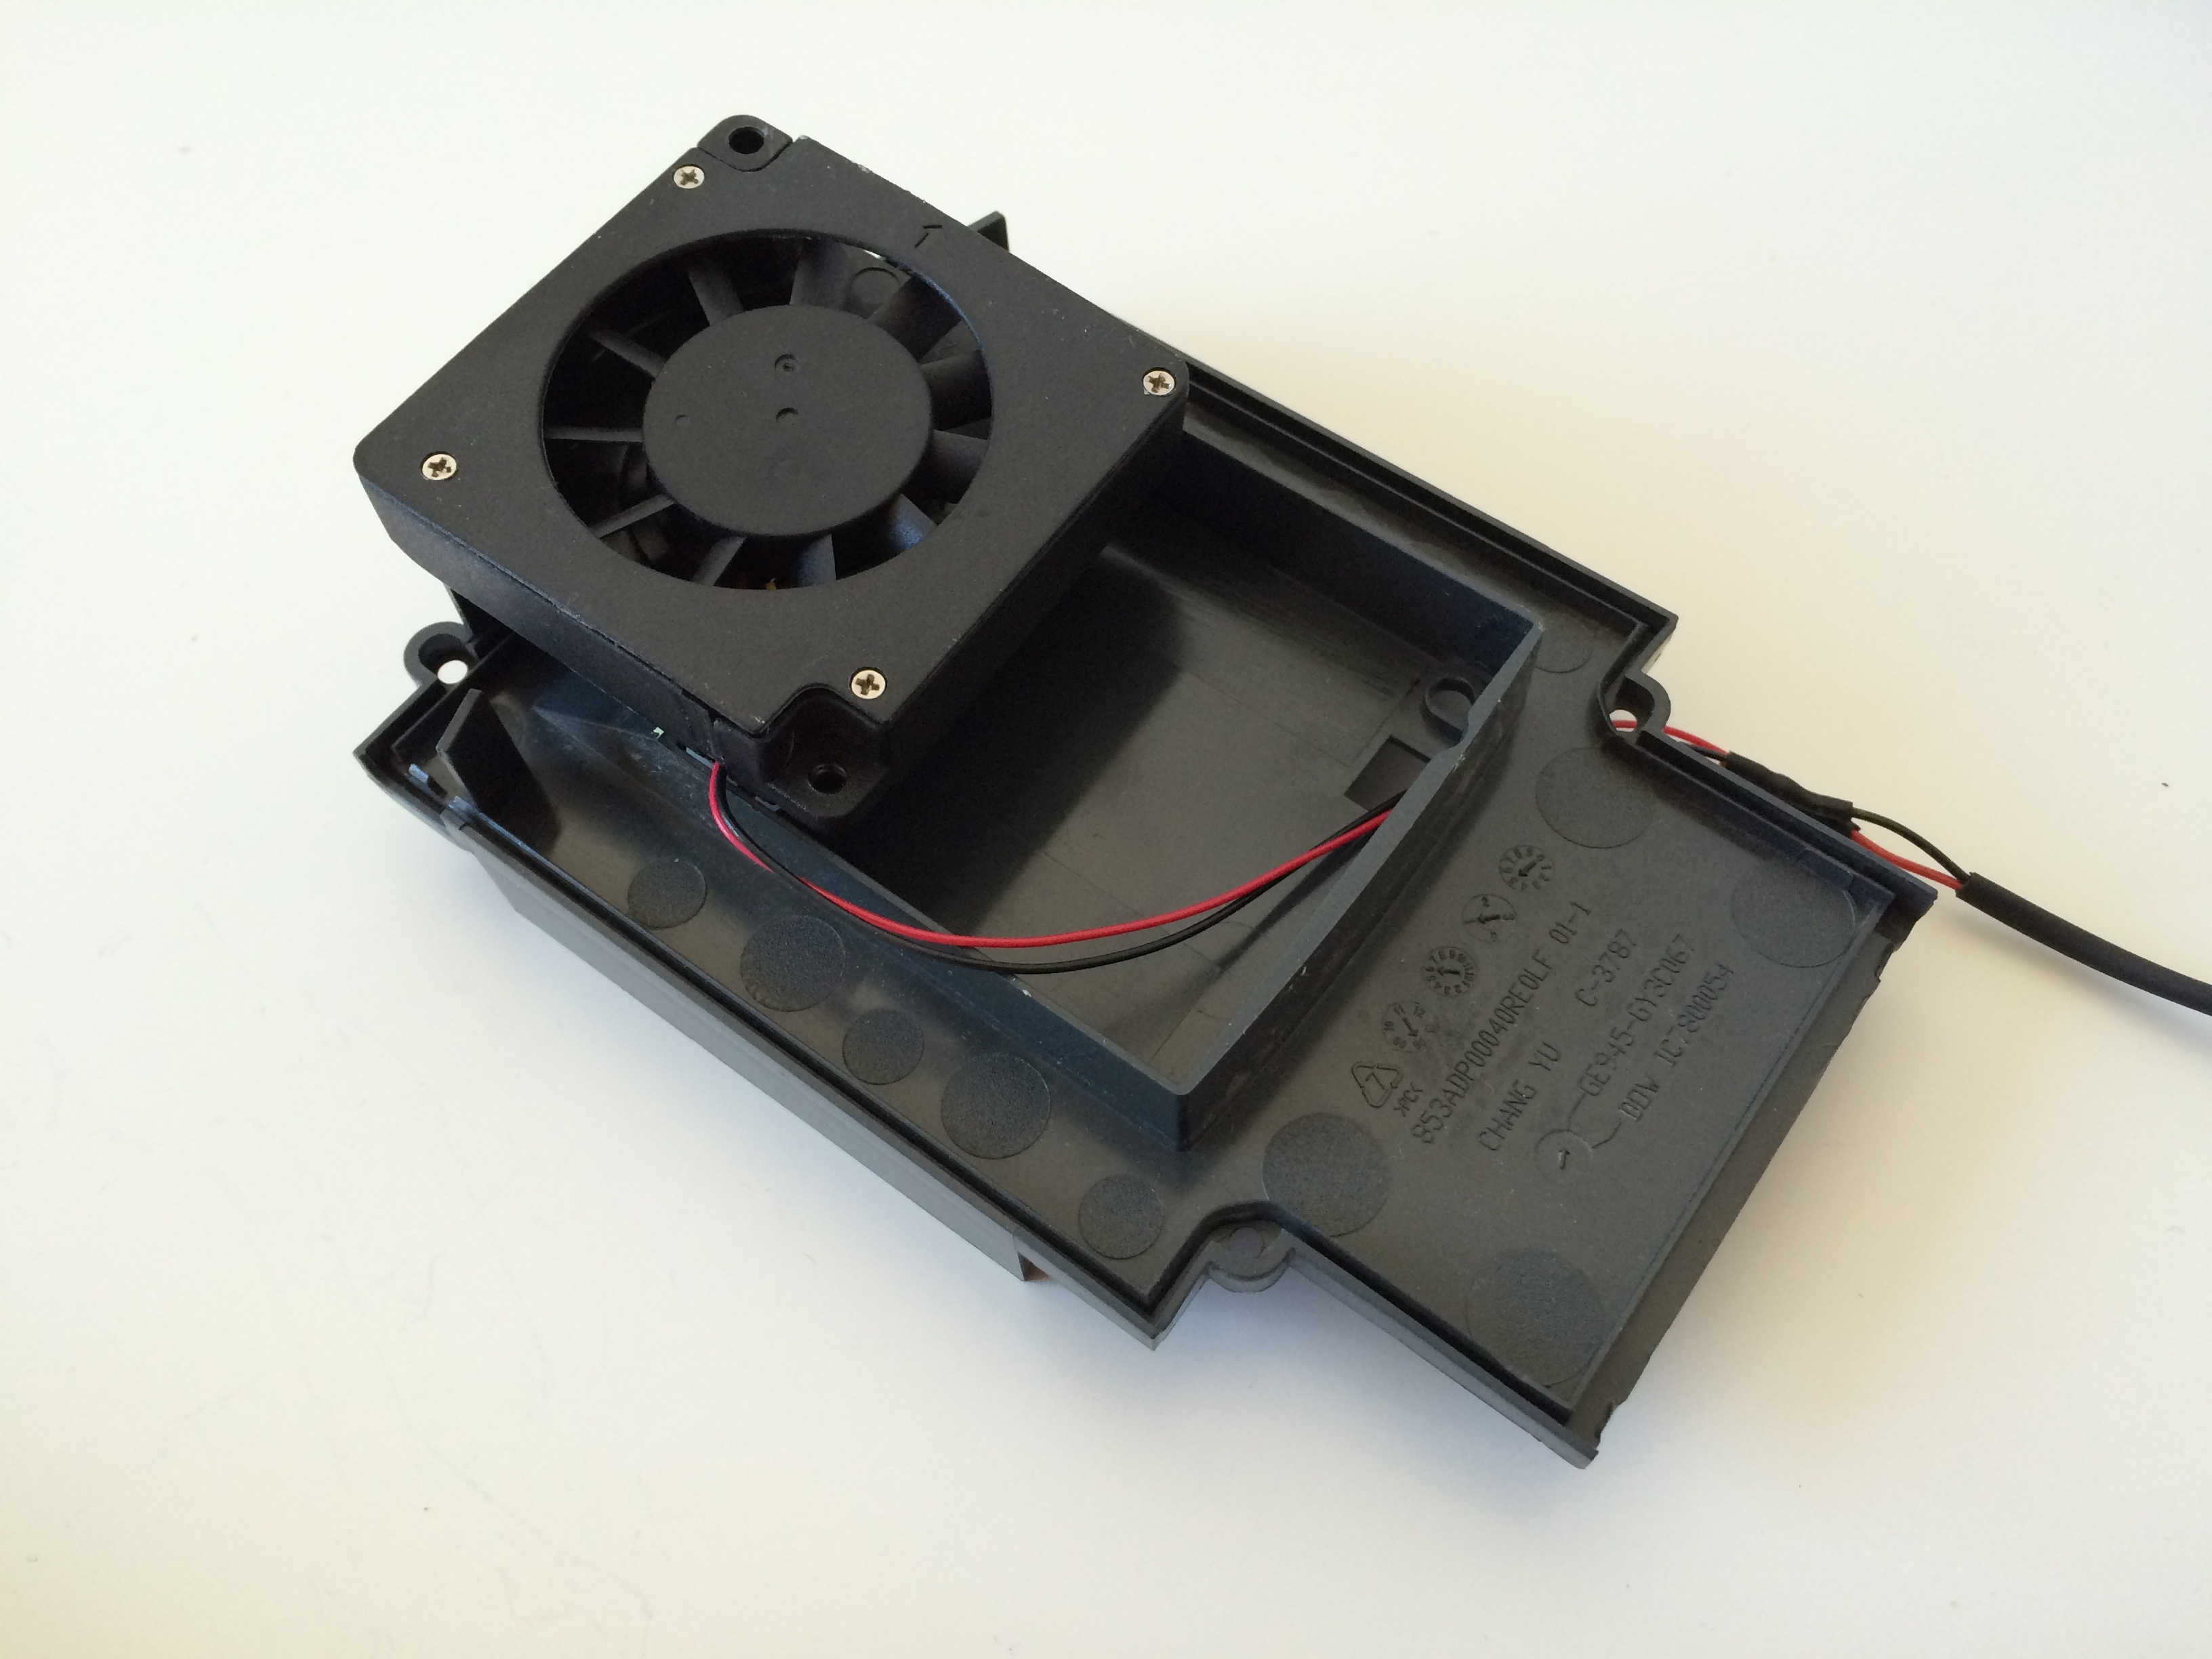 XBOX 360 Power Brick Fan Replacement